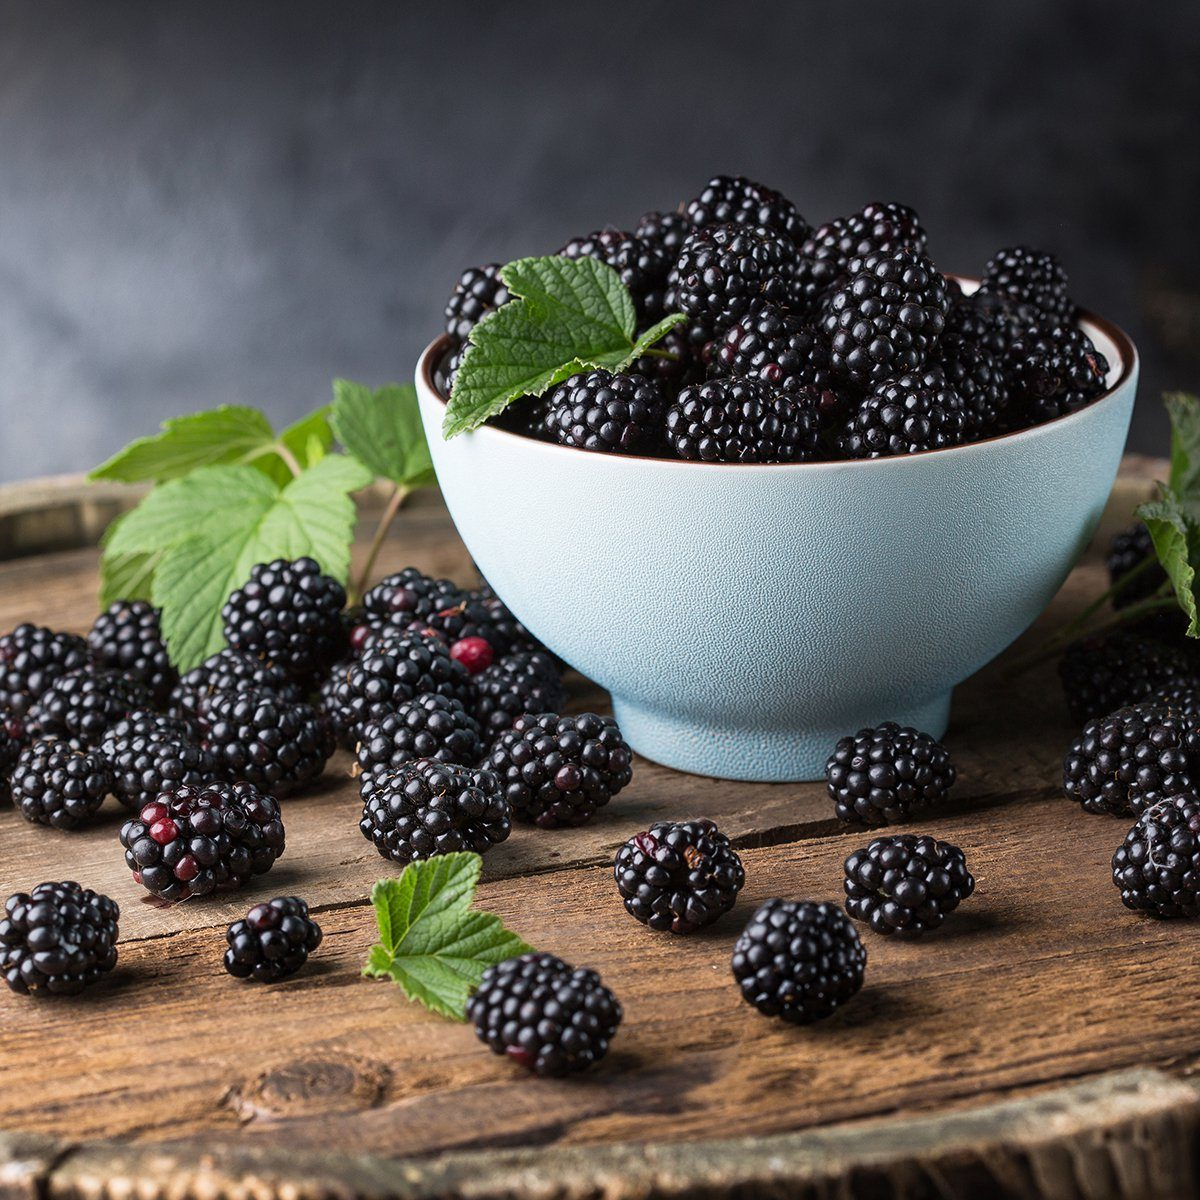 Ripe blackberries with leaves in a bowl on a wooden board on a dark background